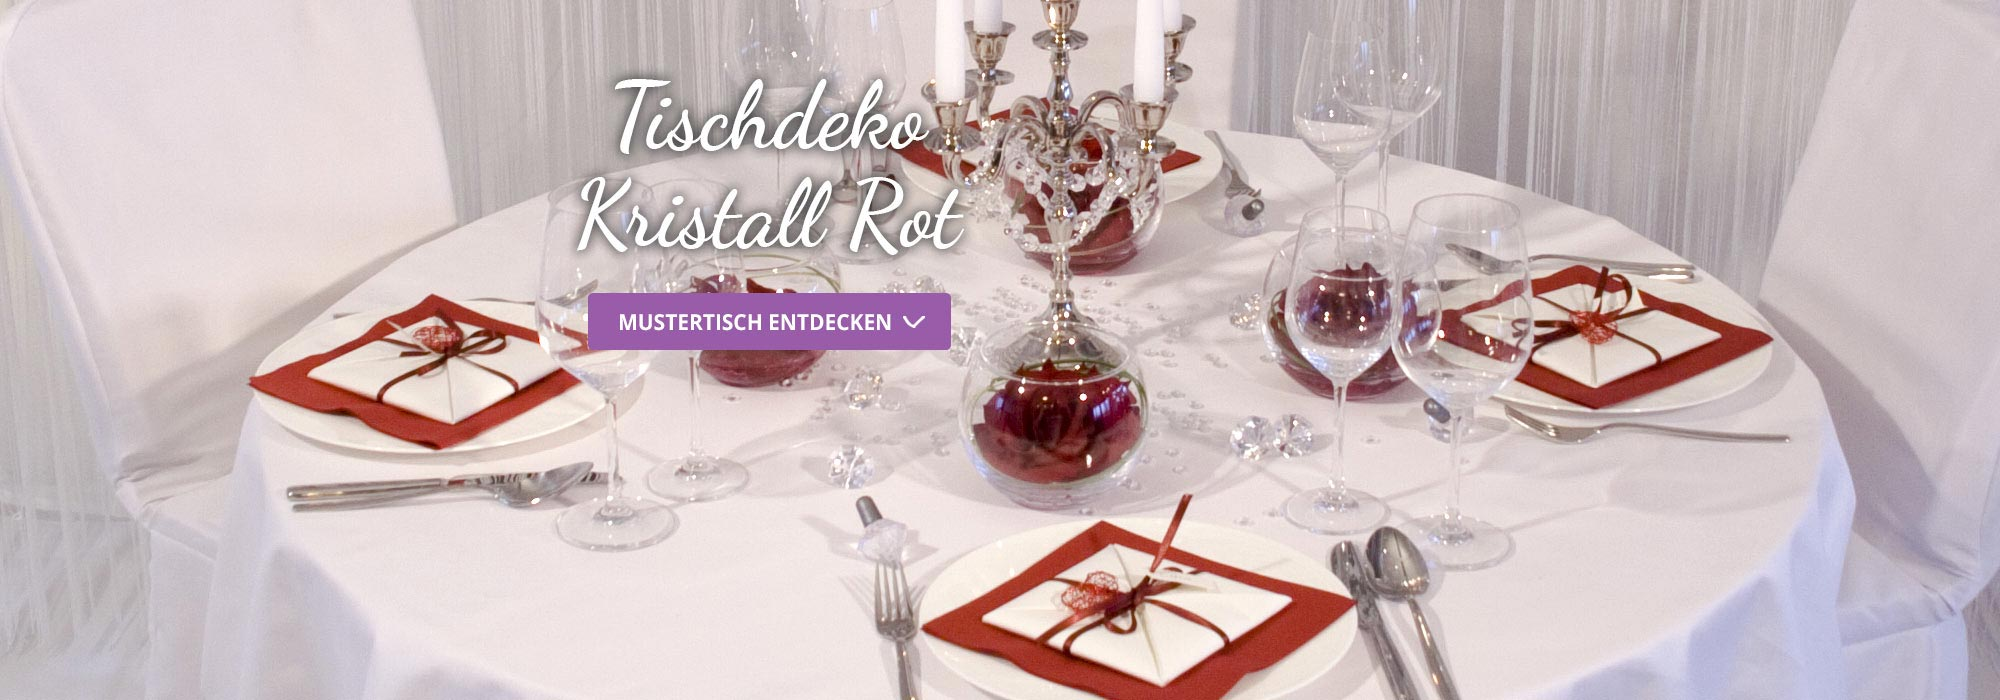 runder tisch mit kristall deko in rot f r die hochzeit. Black Bedroom Furniture Sets. Home Design Ideas